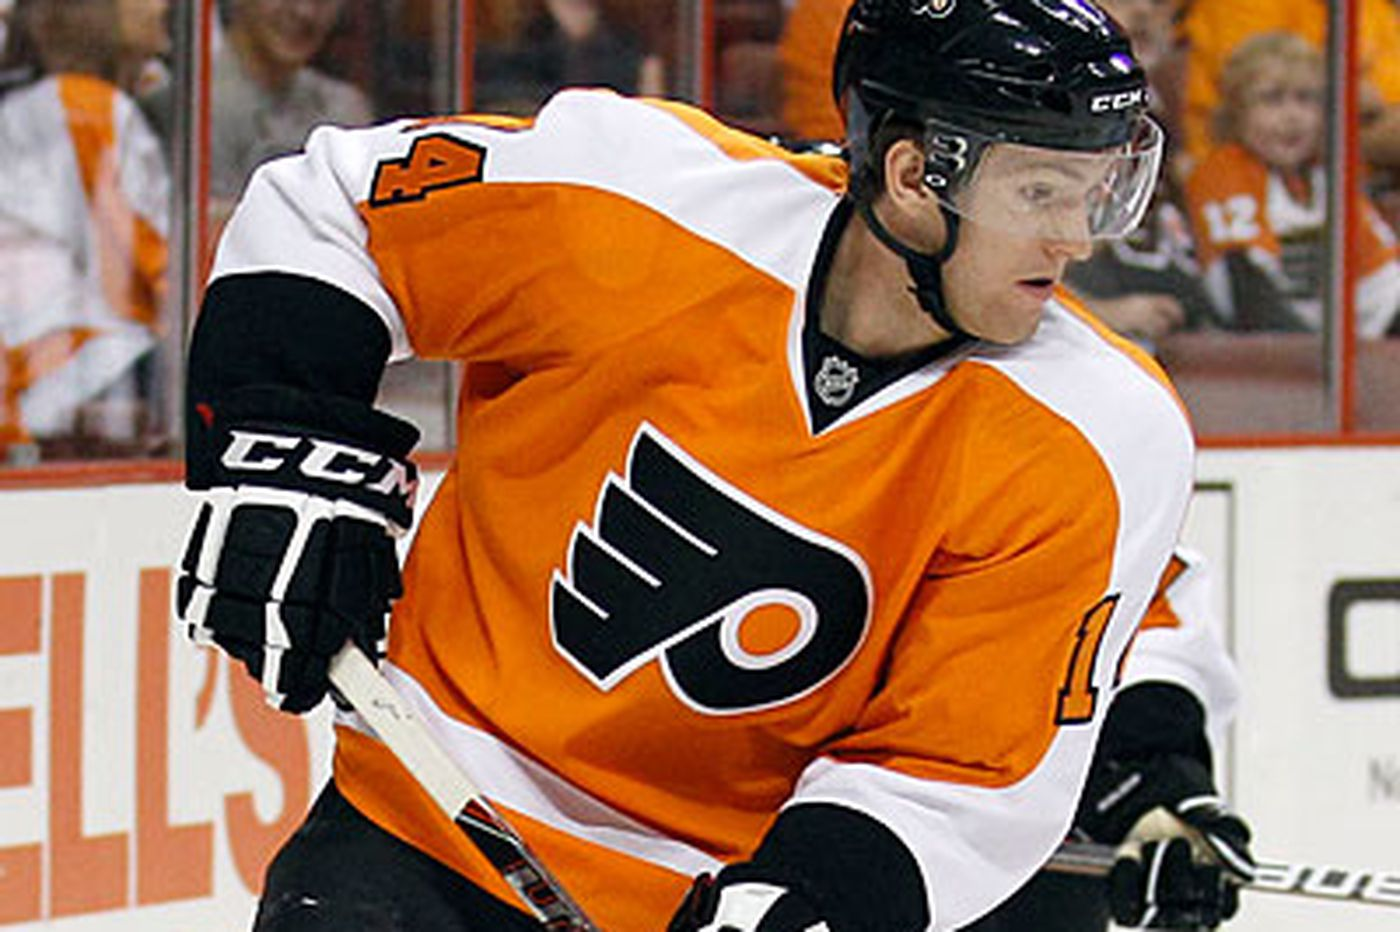 Couturier could step in again for injured Giroux